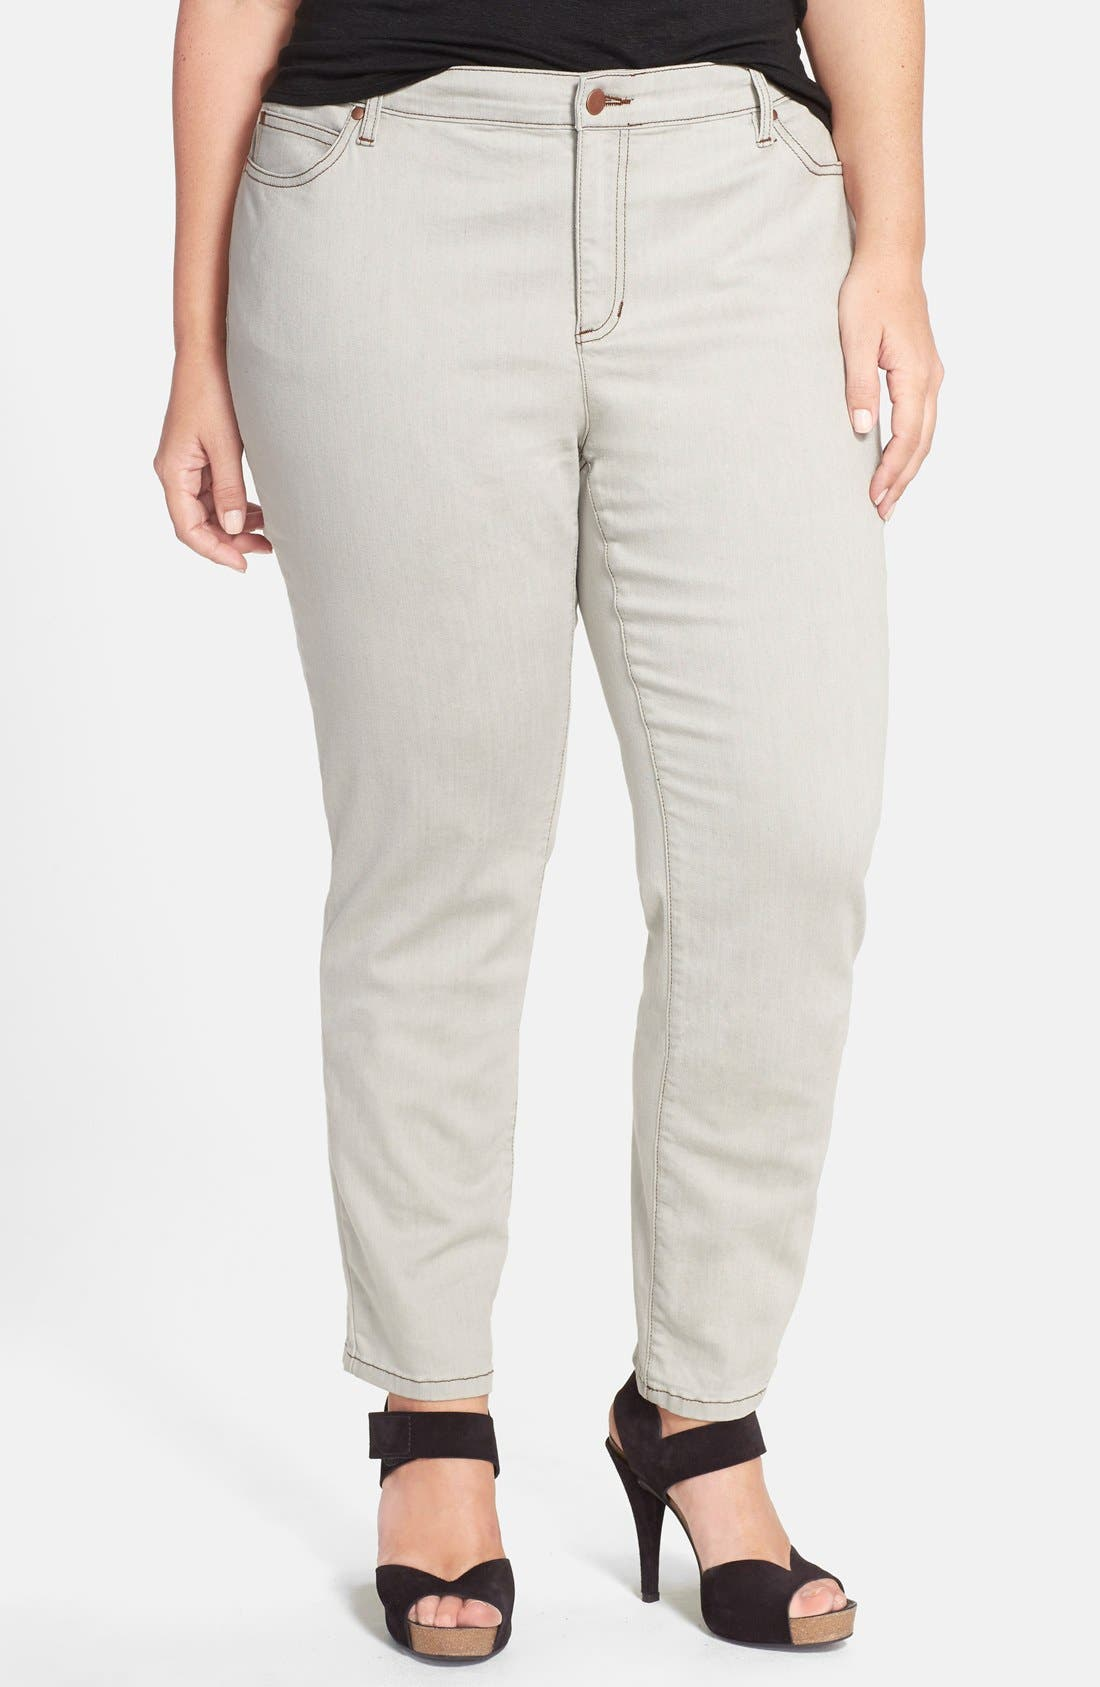 Alternate Image 1 Selected - Eileen Fisher Slim Ankle Jeans (Sunbleached Grey) (Plus Size)